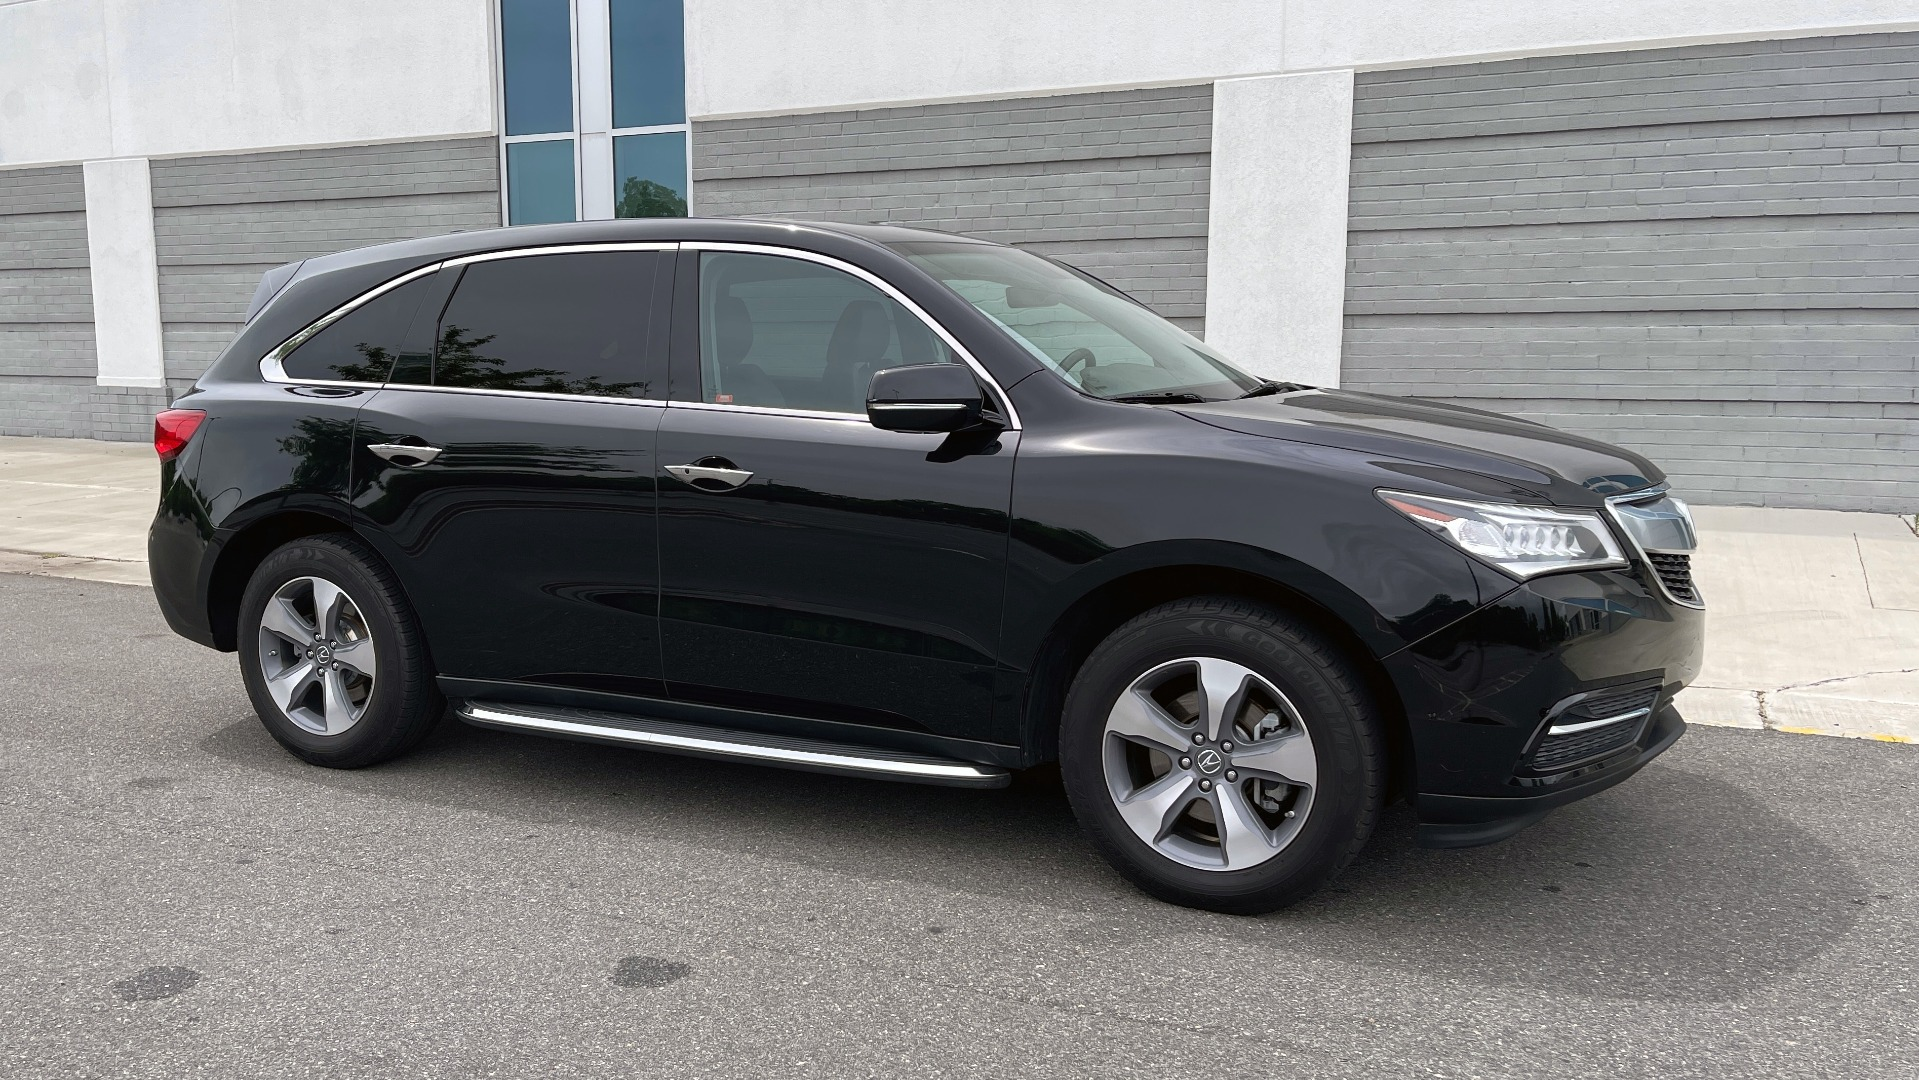 Used 2016 Acura MDX 3.5L V6 / AUTO / LEATHER / NAV / SUNROOF / 3-ROW / REARVIEW for sale $21,900 at Formula Imports in Charlotte NC 28227 6